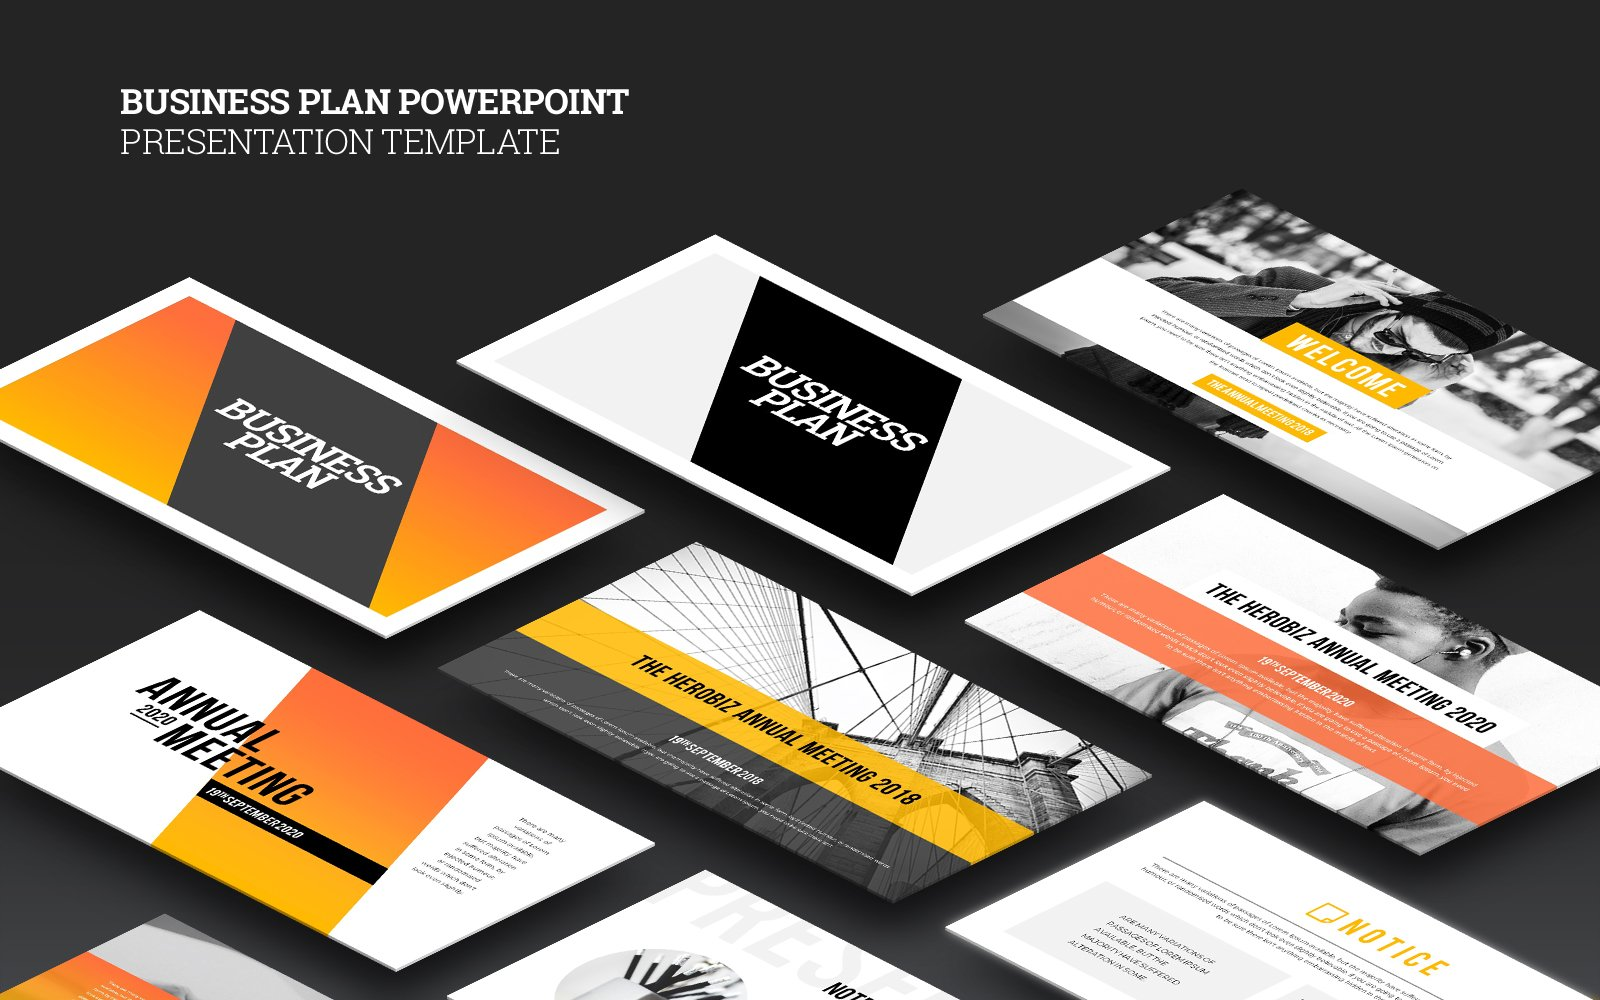 """Business Plan Presentation"" PowerPoint 模板 #126362"